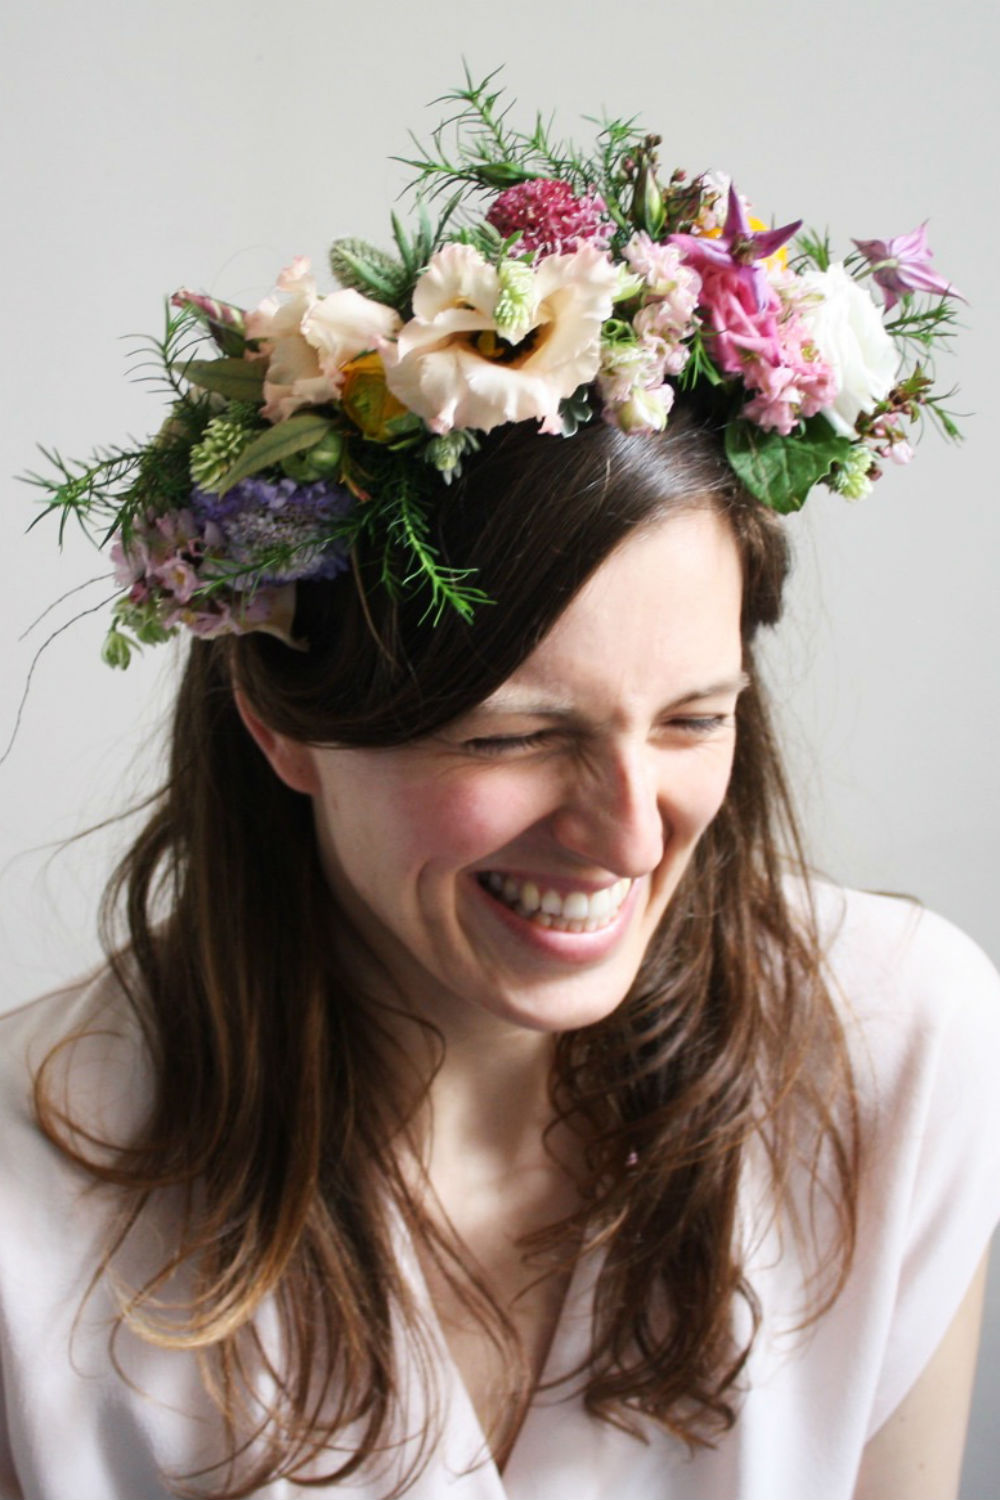 Wedding flowers ideas for your big day a floral crown adds a touch of the festival to your wedding go full floral for winter you could easily izmirmasajfo